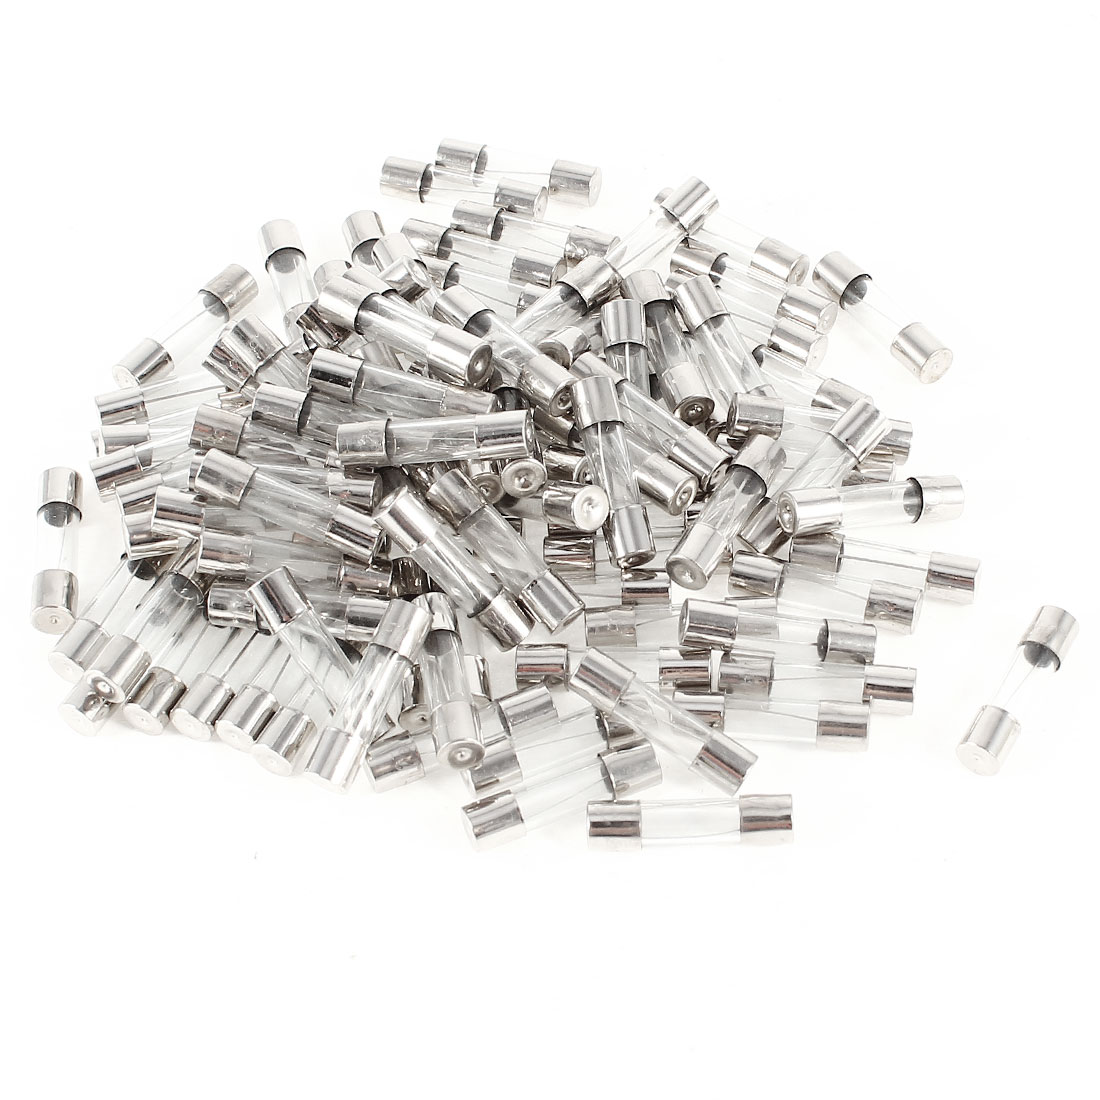 100 Pcs 250V 10A Electronic Fast Blow 5mm Dia 20mm Length Glass Fuse Tube